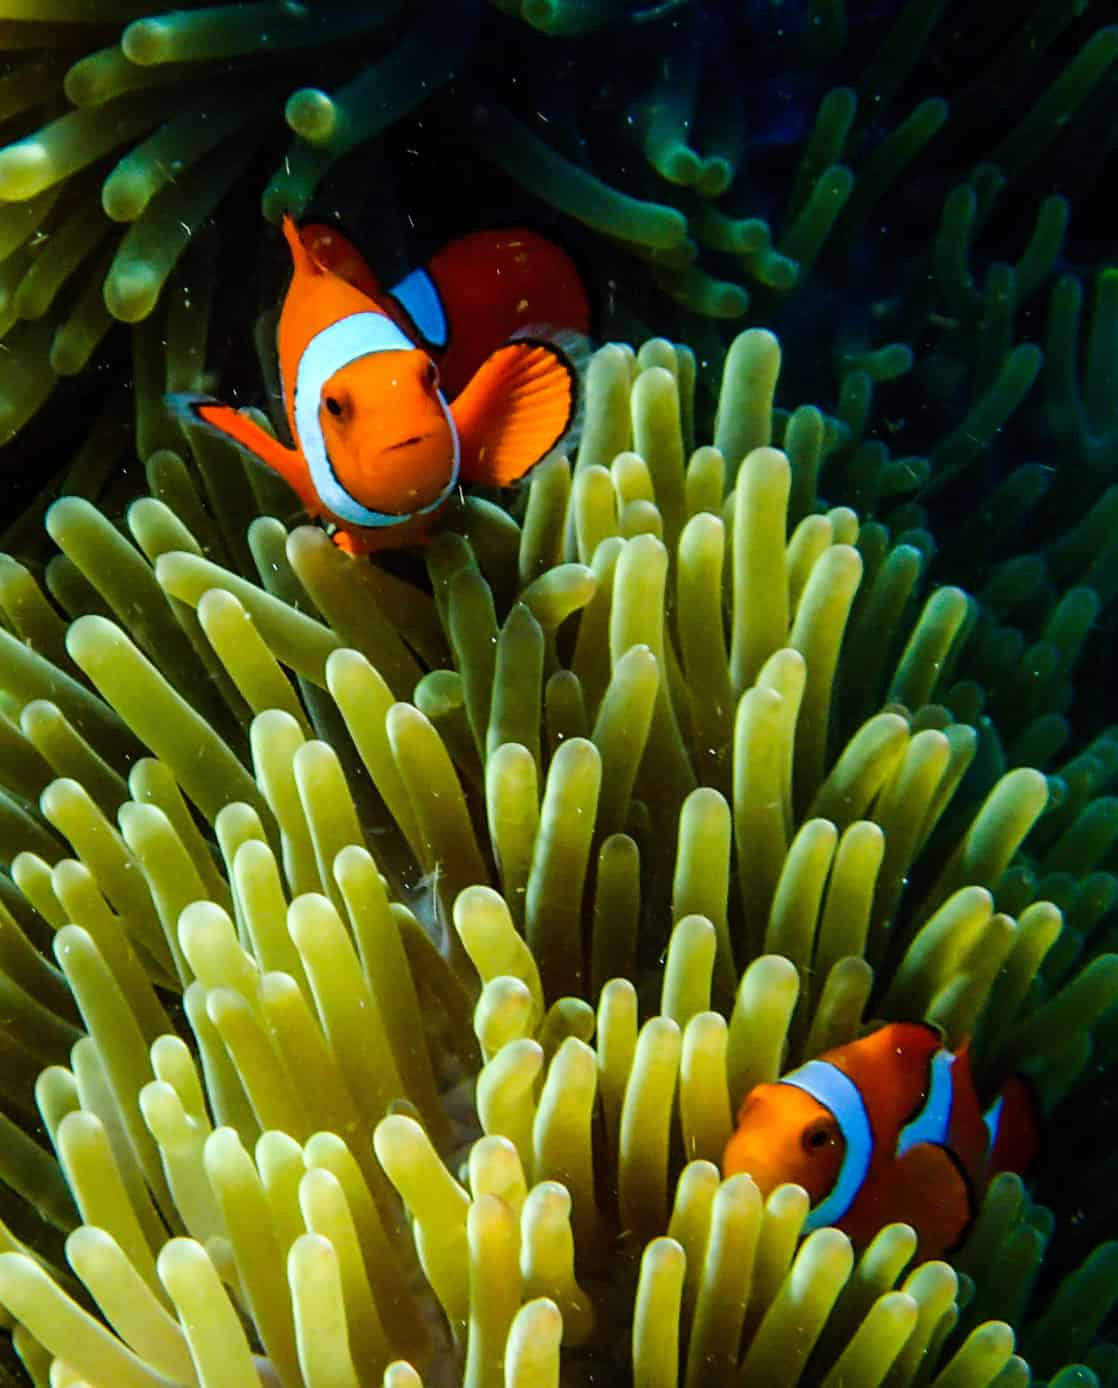 Clown fish in an anemone seen on a scuba diving excursion from a small ship cruise in the south pacific islands.